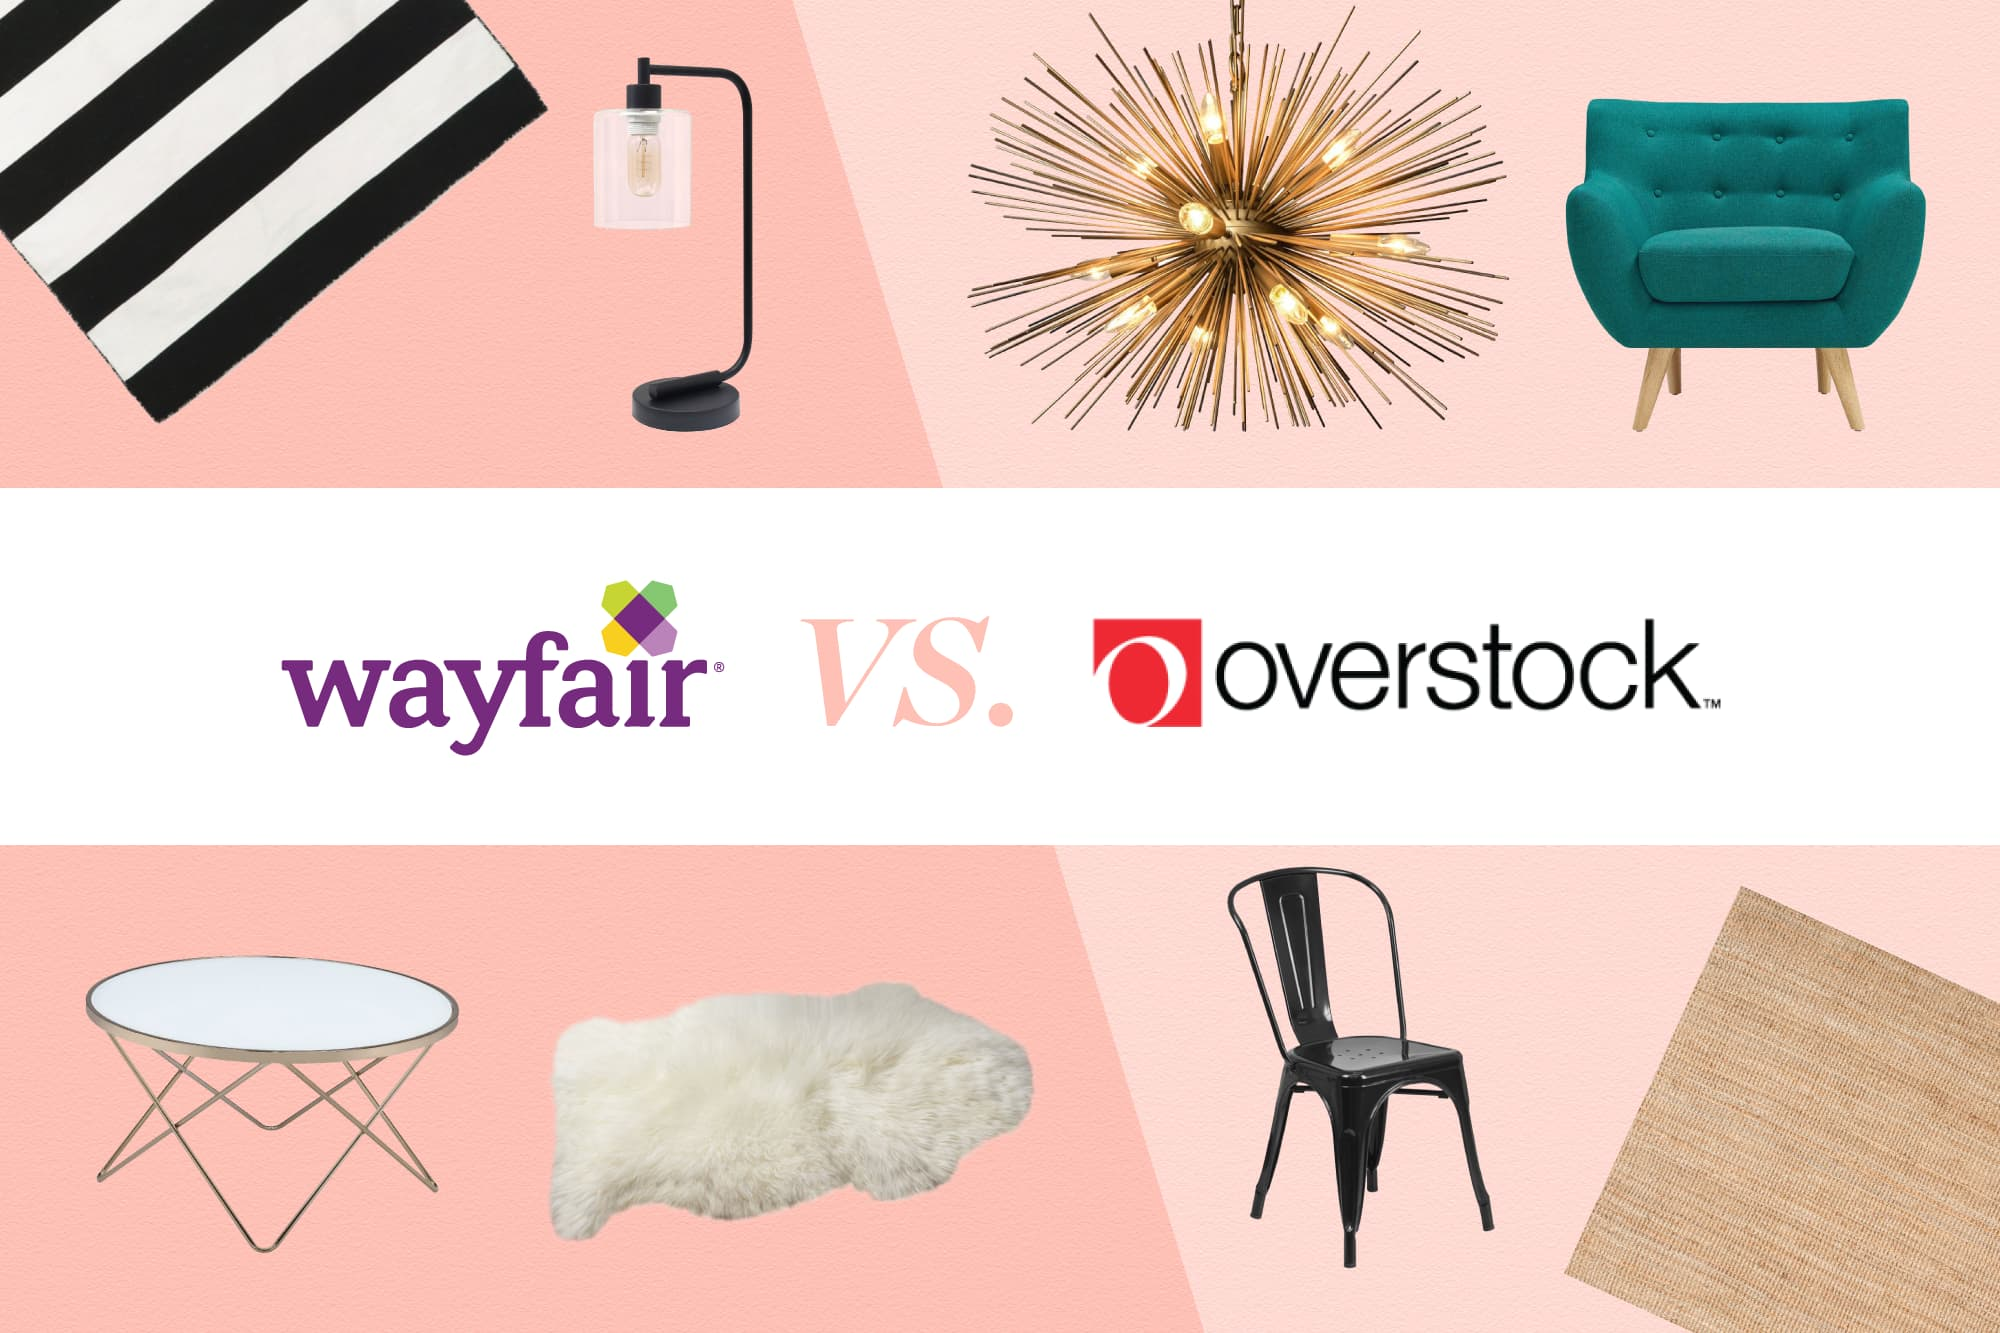 b5e791799a7 Wayfair vs. Overstock  Who Has the Better Deal on Home Goods ...